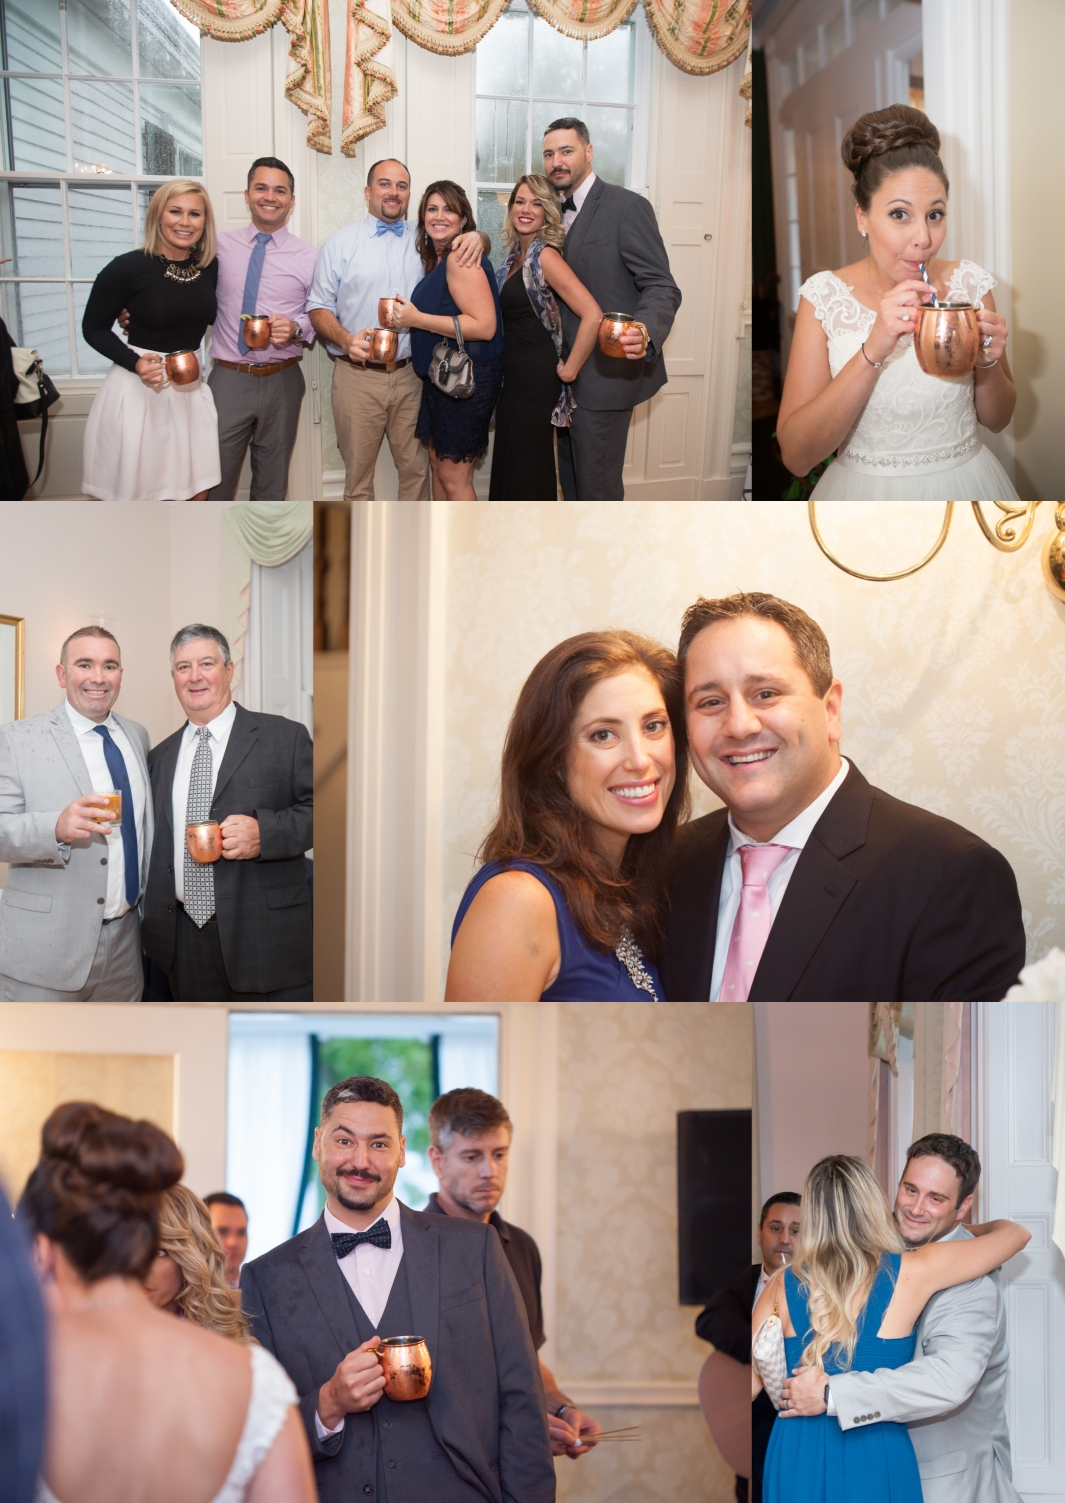 Cape Cod Wedding Photographer | ©www.lisaelizabethimages.com